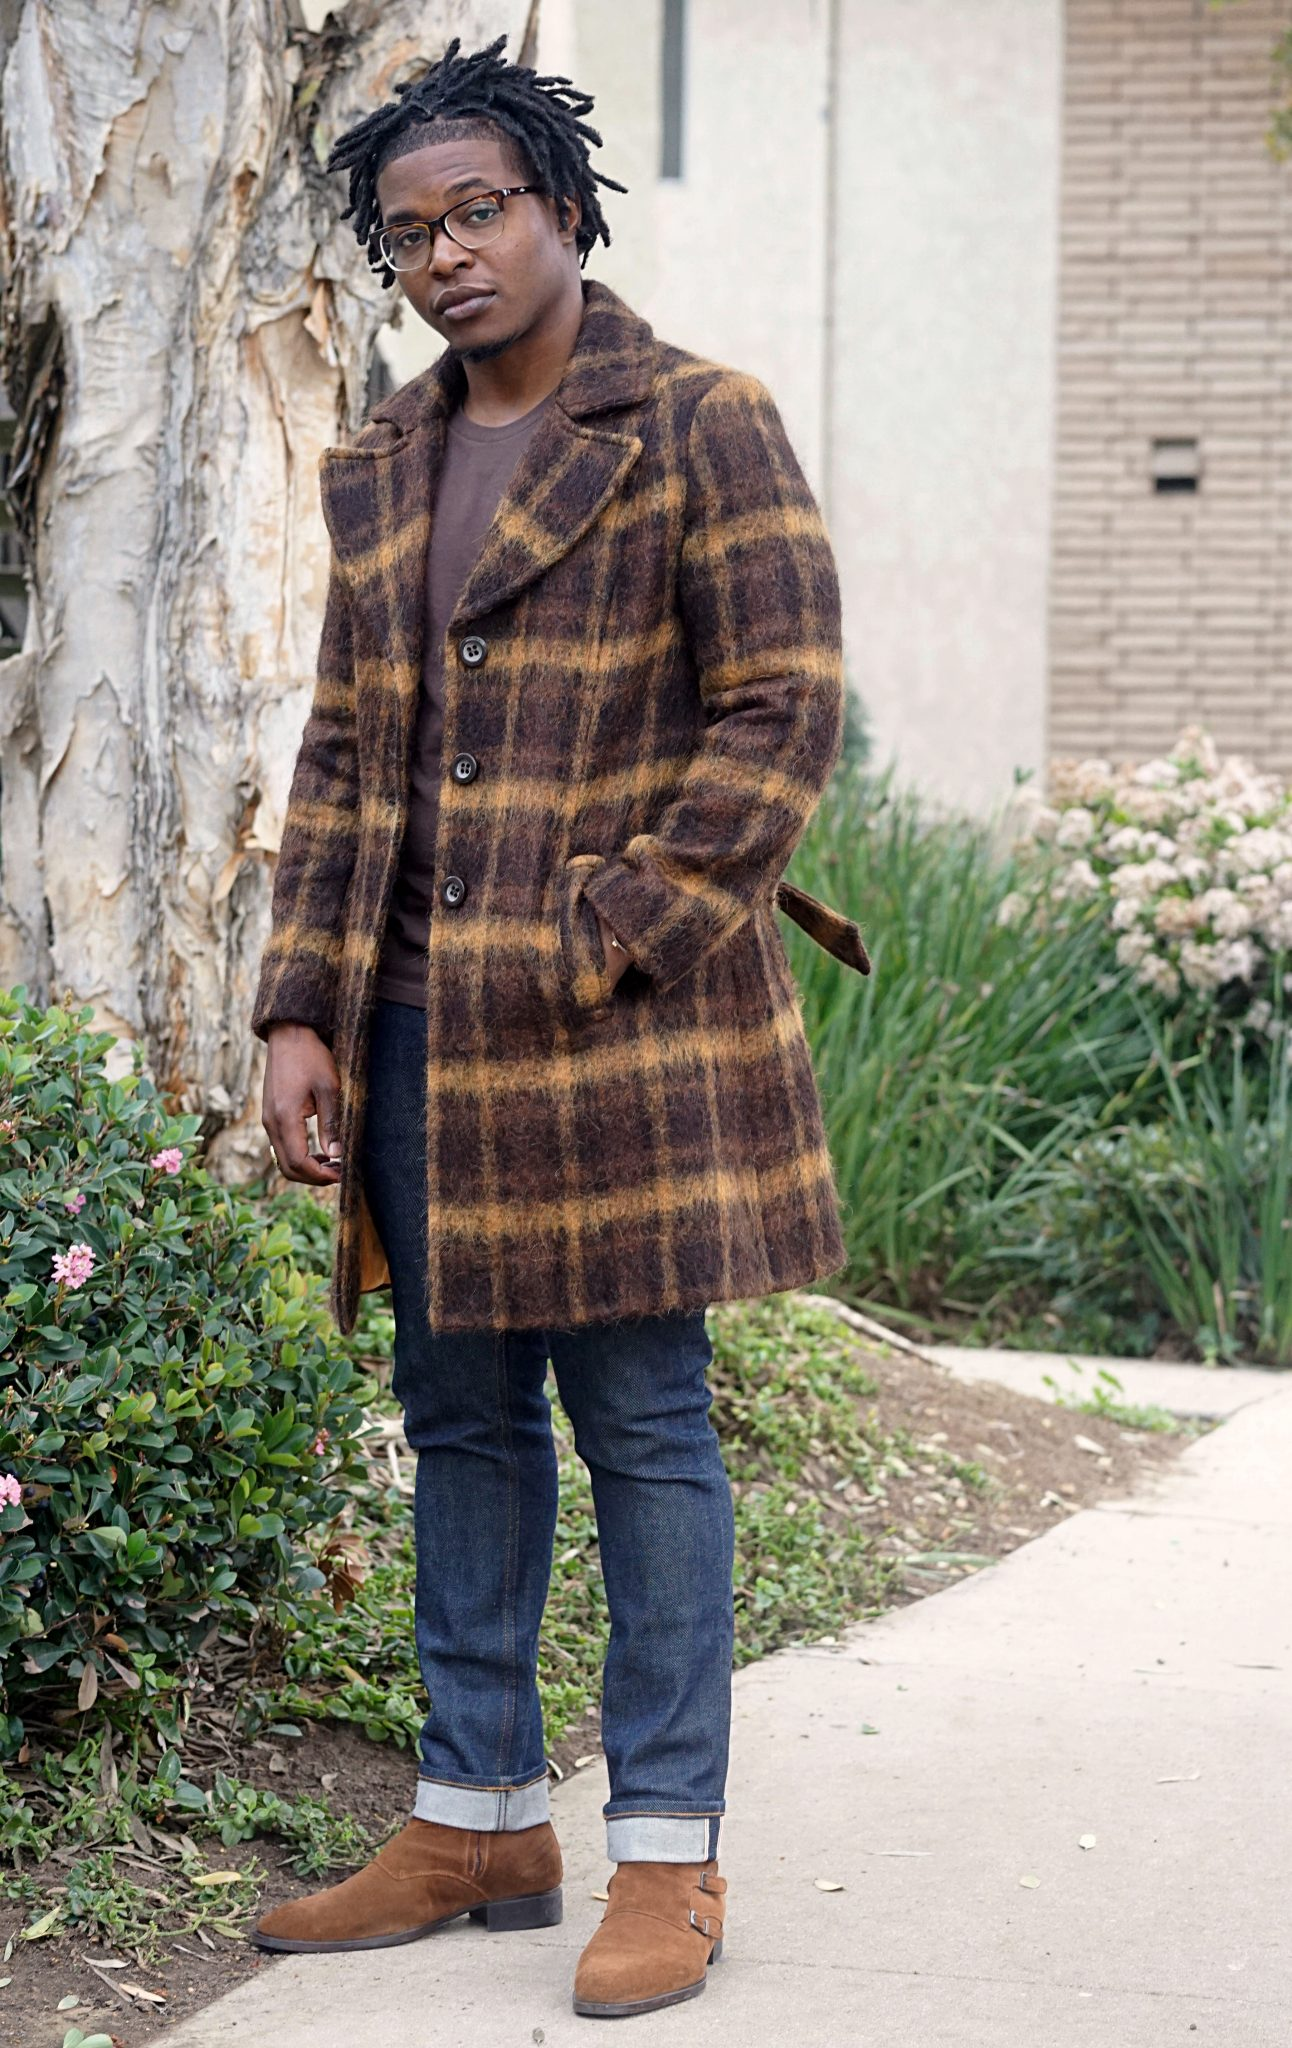 wearing-brown-shirt-statement coat-giovane san martino-plaid-overcoat-alpaca -jack threads-selvedge denim jeans-zara suede boots